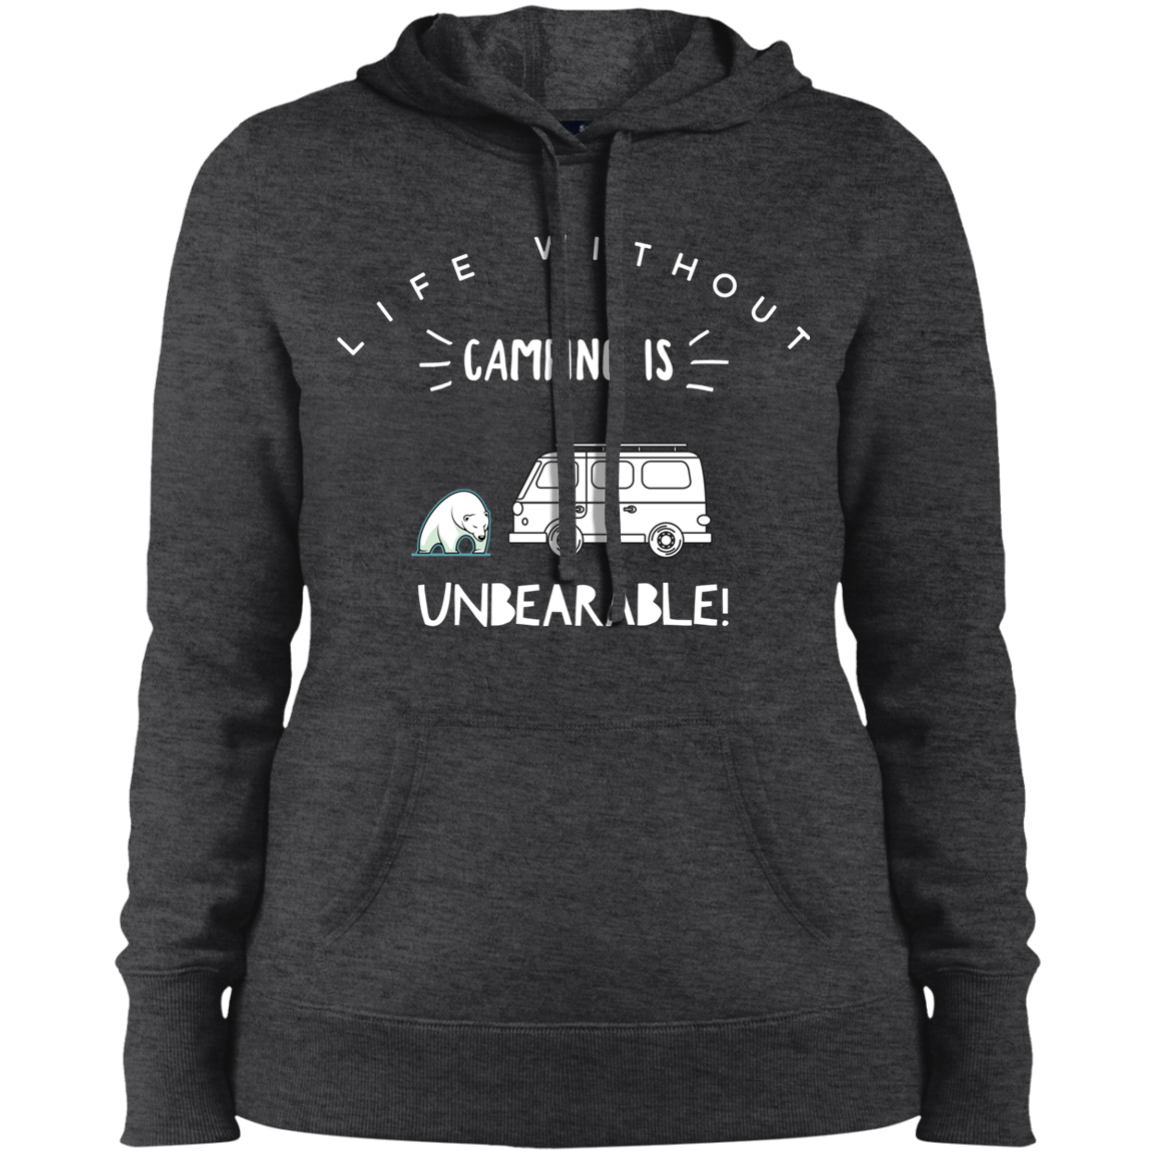 Women's Heavyweight Hoodie - Unbearable